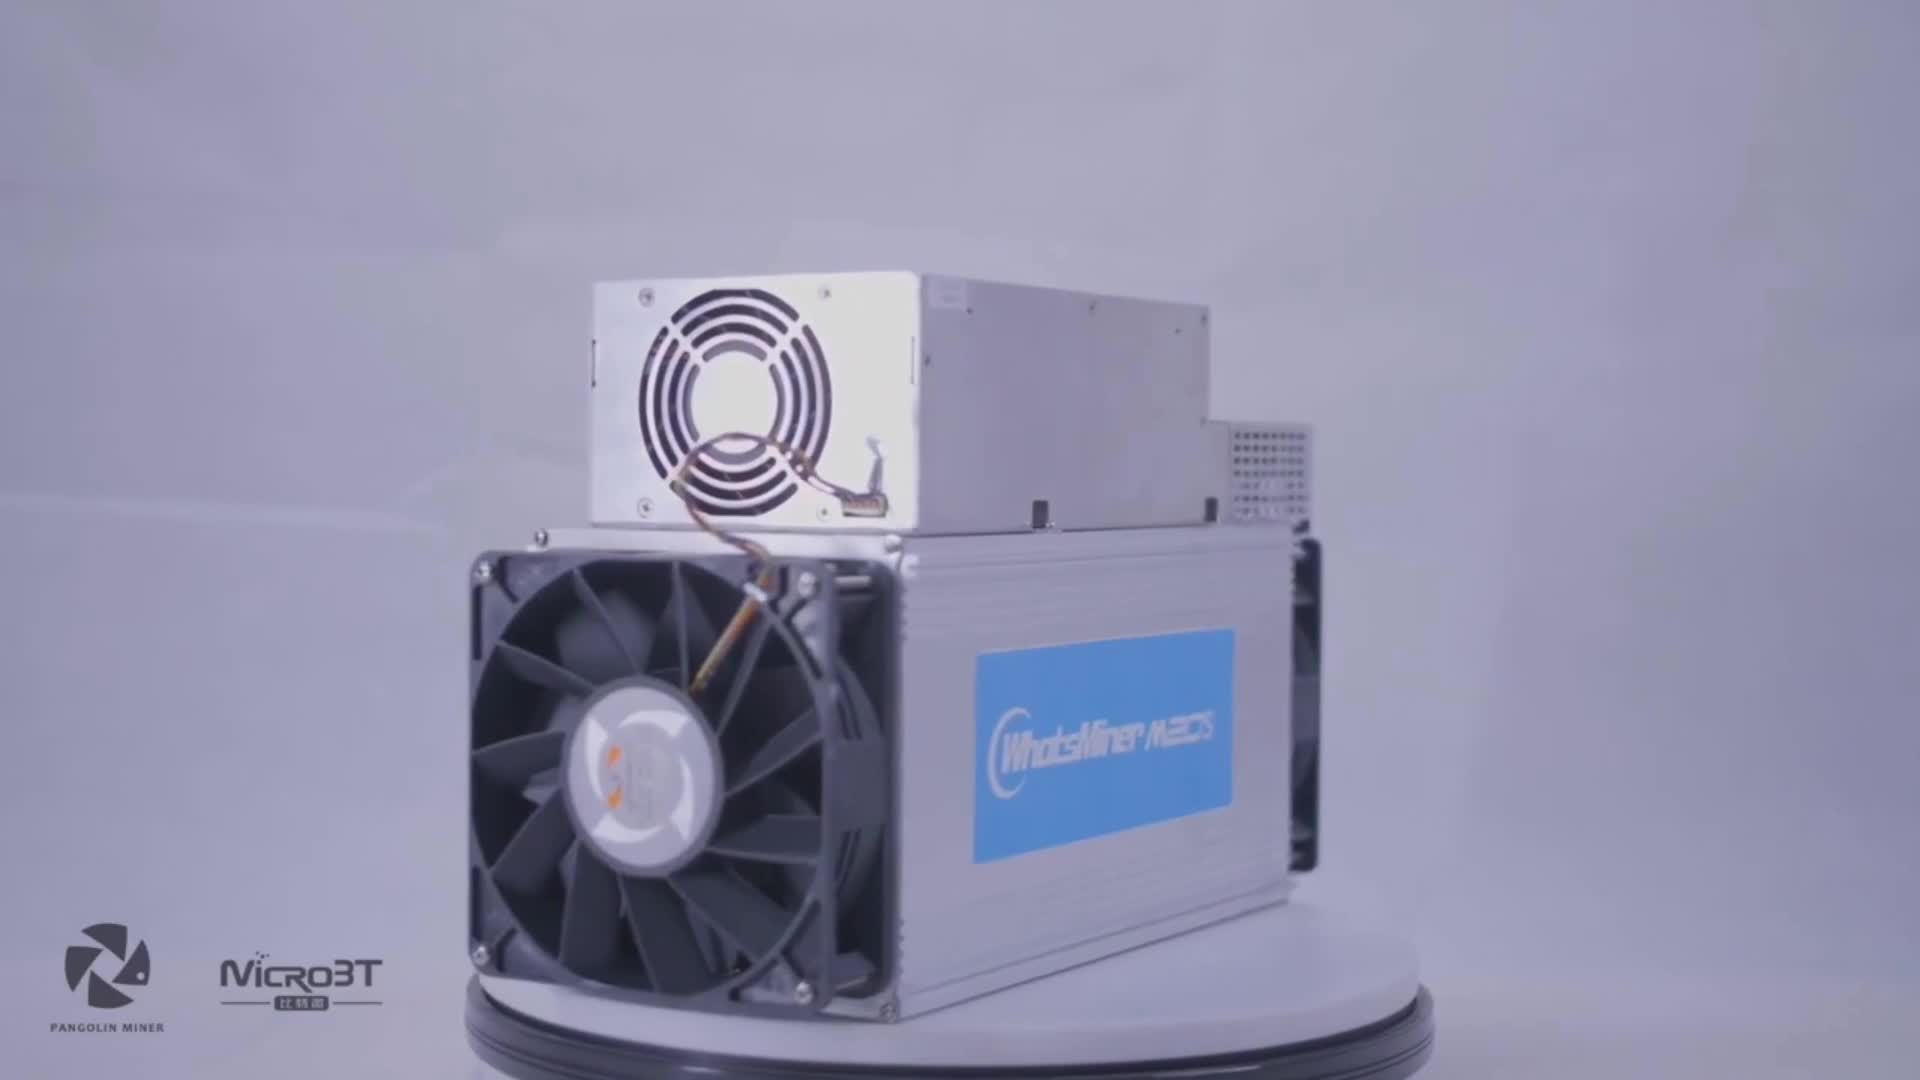 Good Quality New MicroBT M20S 65T bitcoin miner Whatsminer M20s 65T 68T mining machine with psu